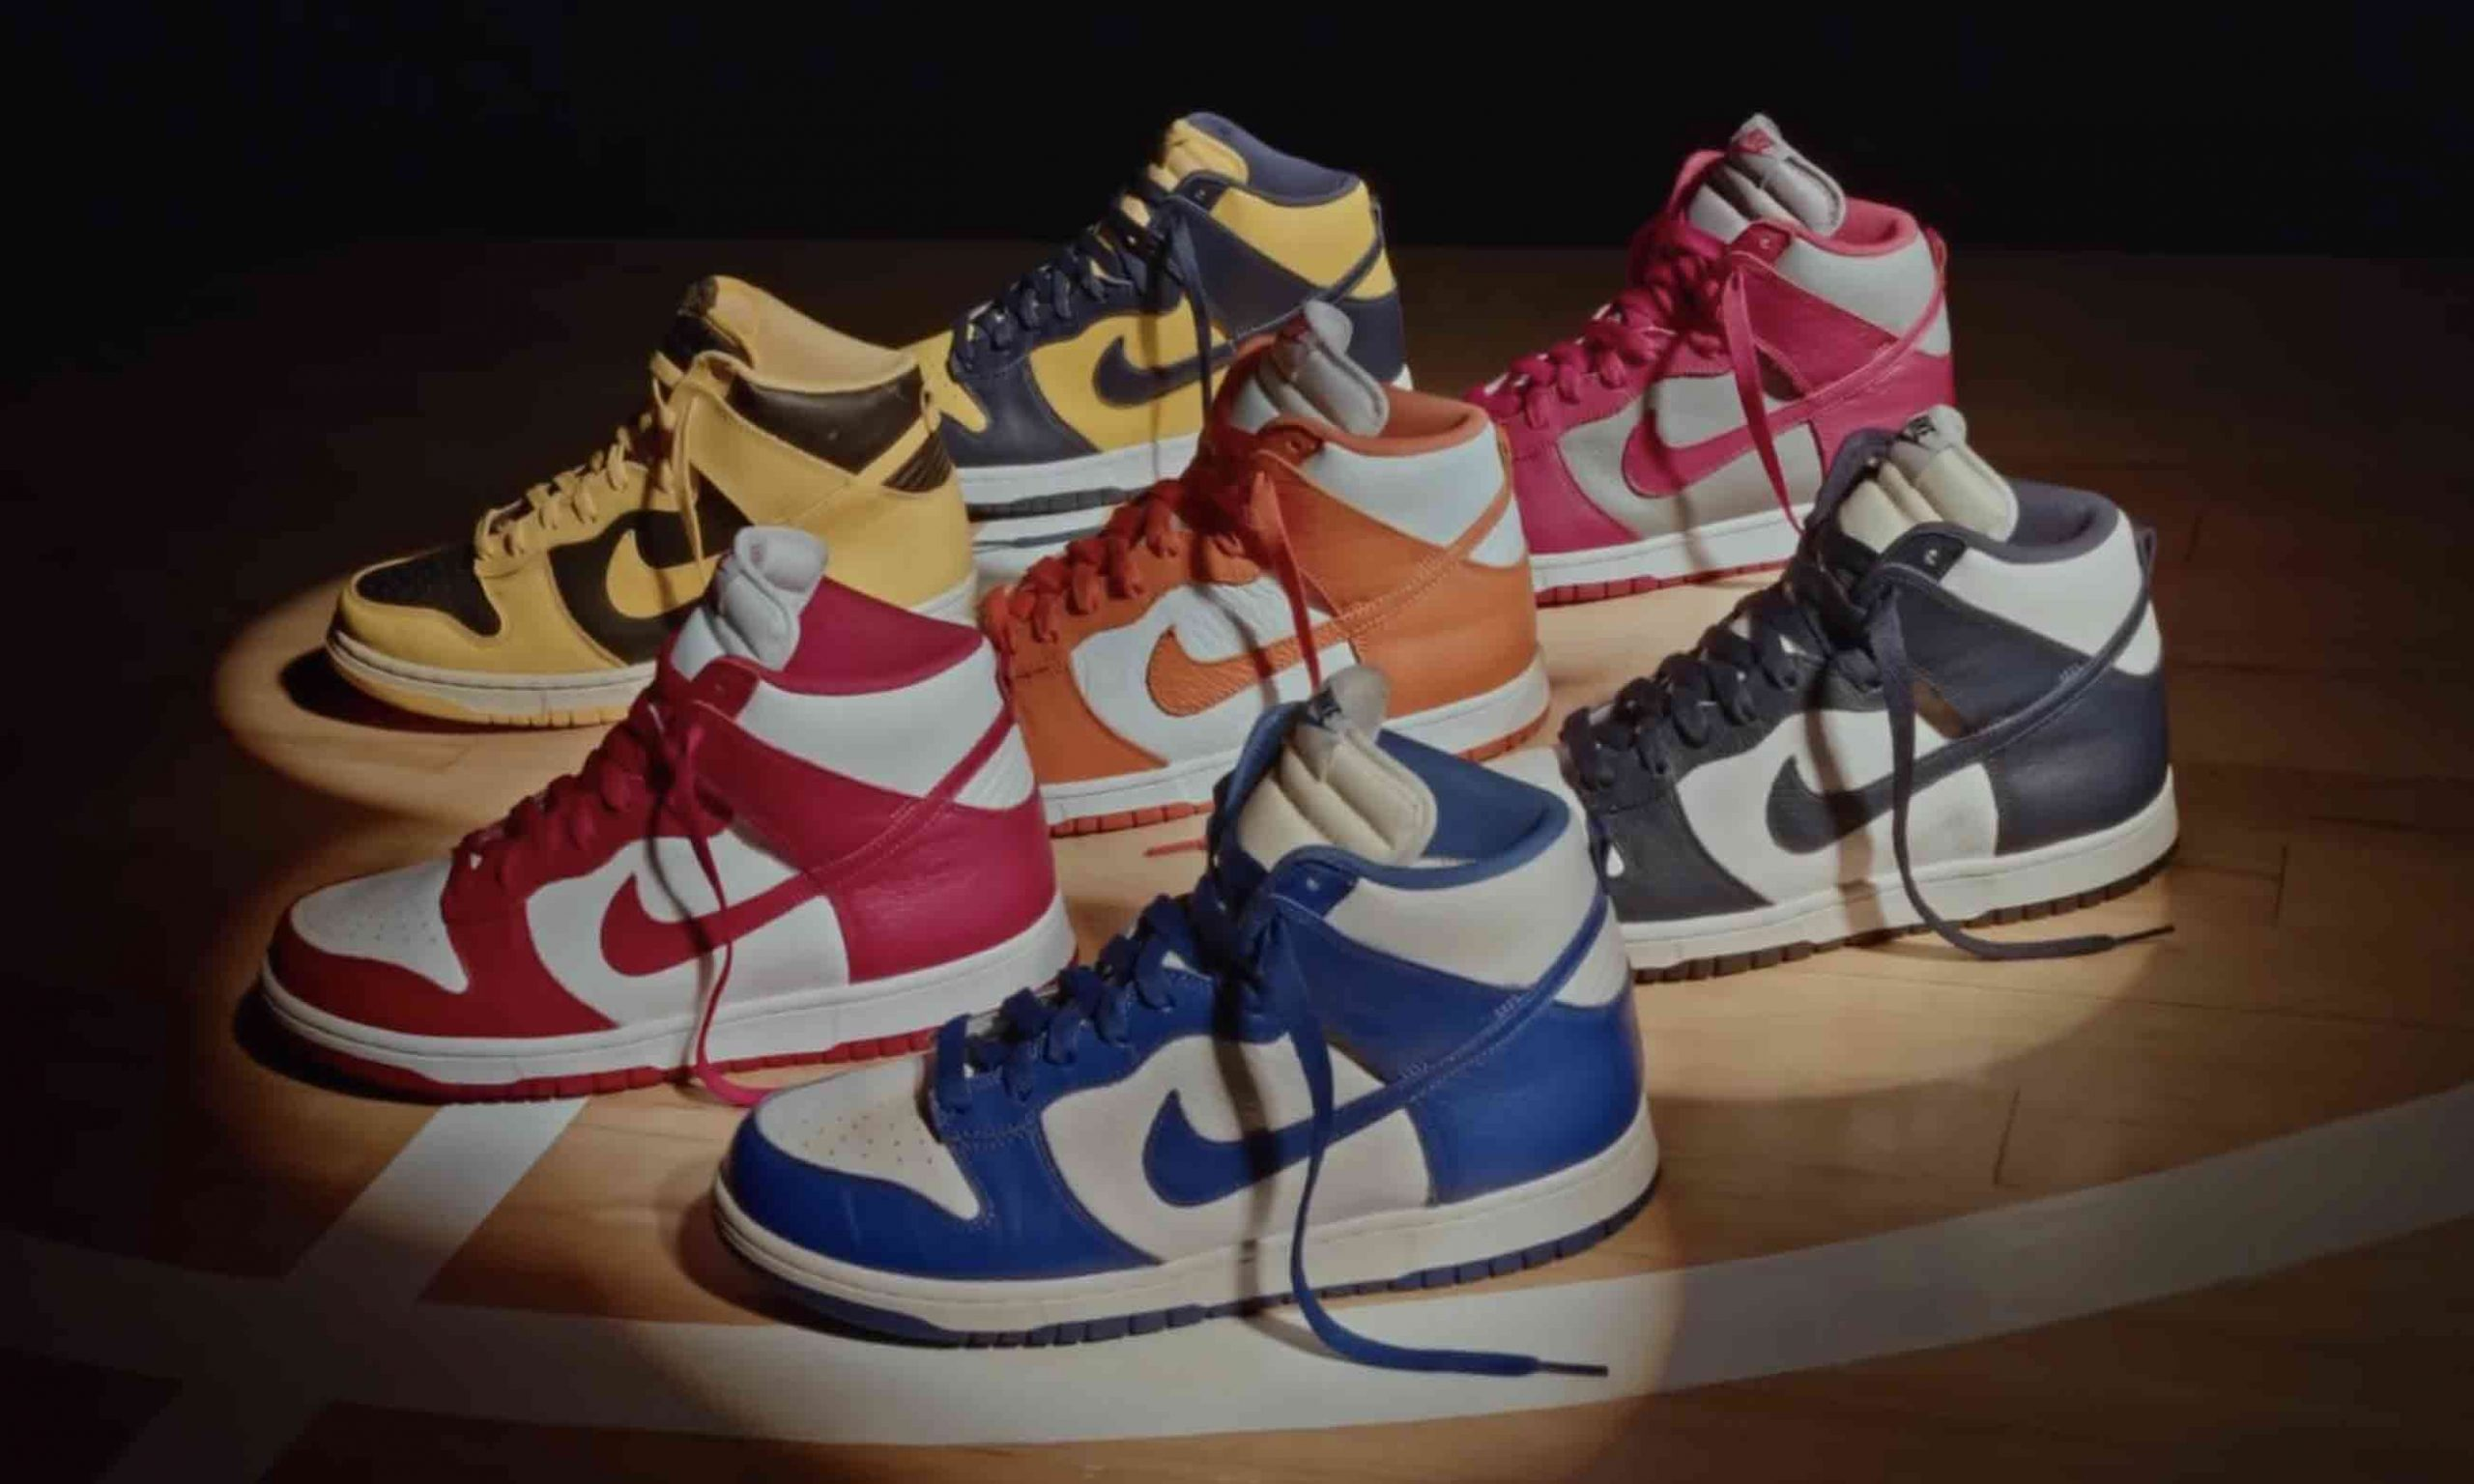 Nike 官方纪录片《The Story of Dunk》第一集发布